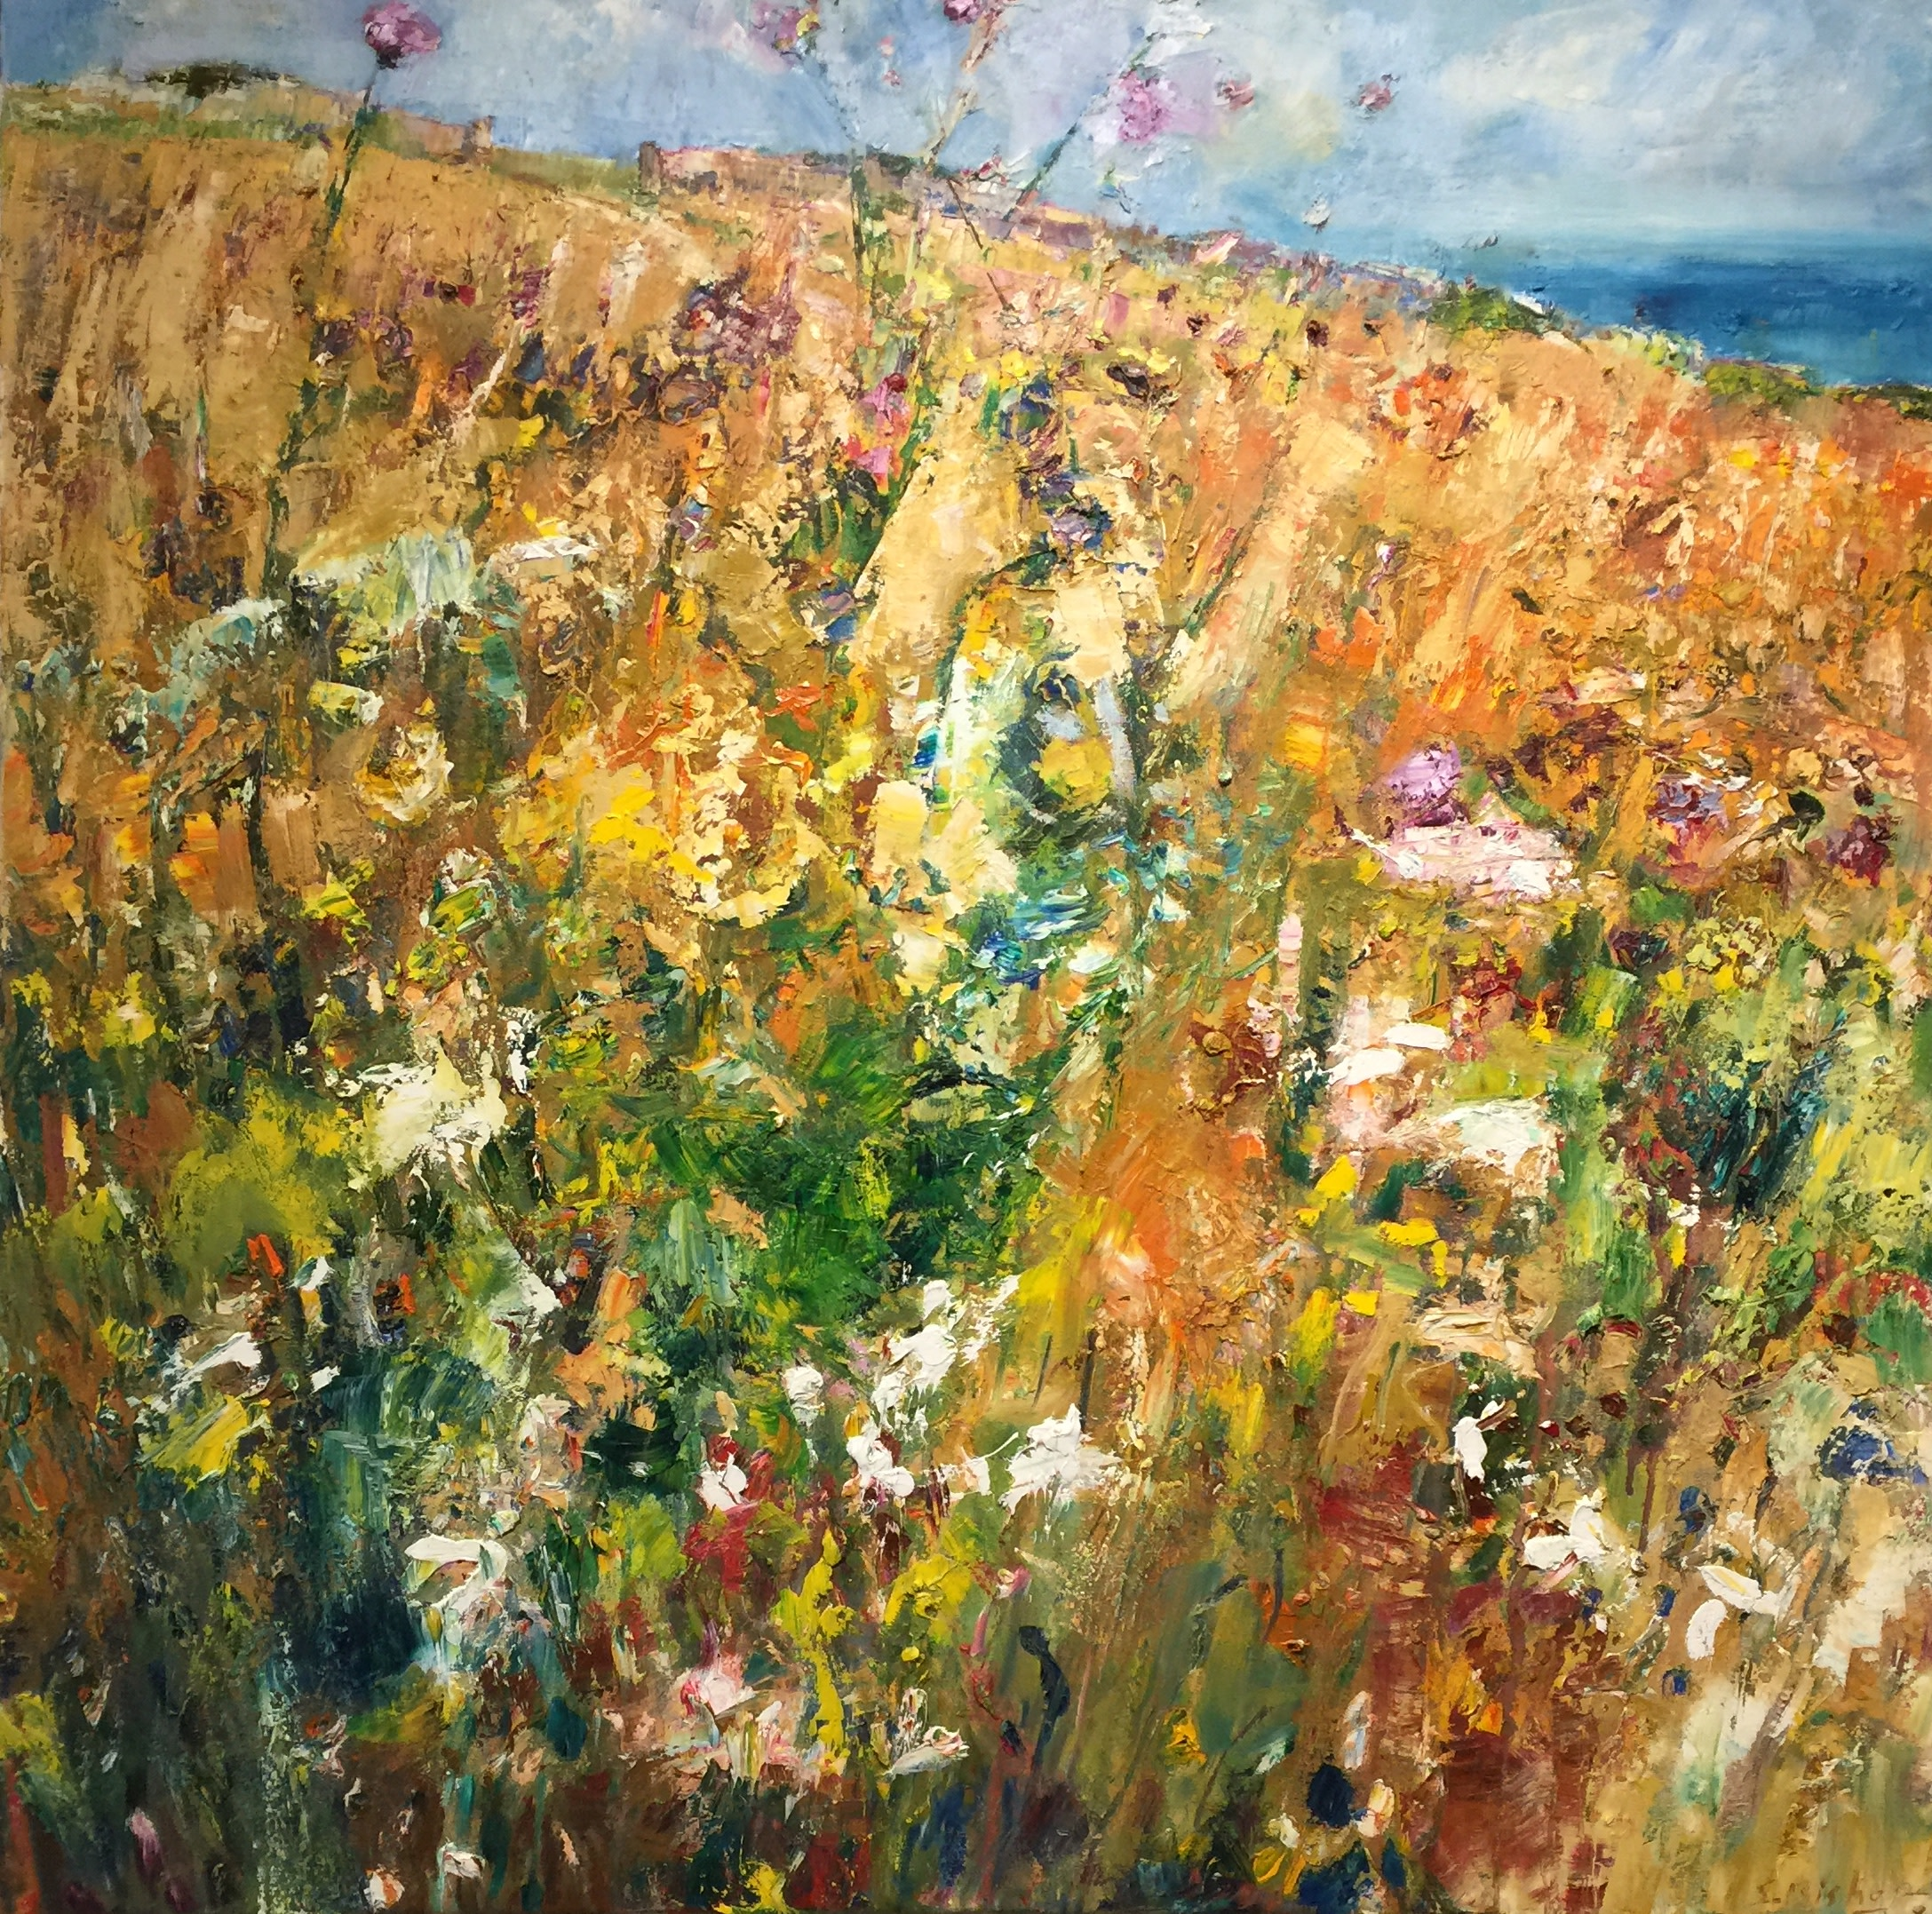 "<span class=""link fancybox-details-link""><a href=""/artists/49-stephen-bishop/works/2427-stephen-bishop-summer-scorched-field/"">View Detail Page</a></span><div class=""artist""><strong>Stephen Bishop</strong></div> <div class=""title""><em>Summer Scorched Field</em></div> <div class=""medium"">Oil on Canvas</div> <div class=""dimensions"">101 x 101 cm </div><div class=""copyright_line"">Copyright The Artist</div>"